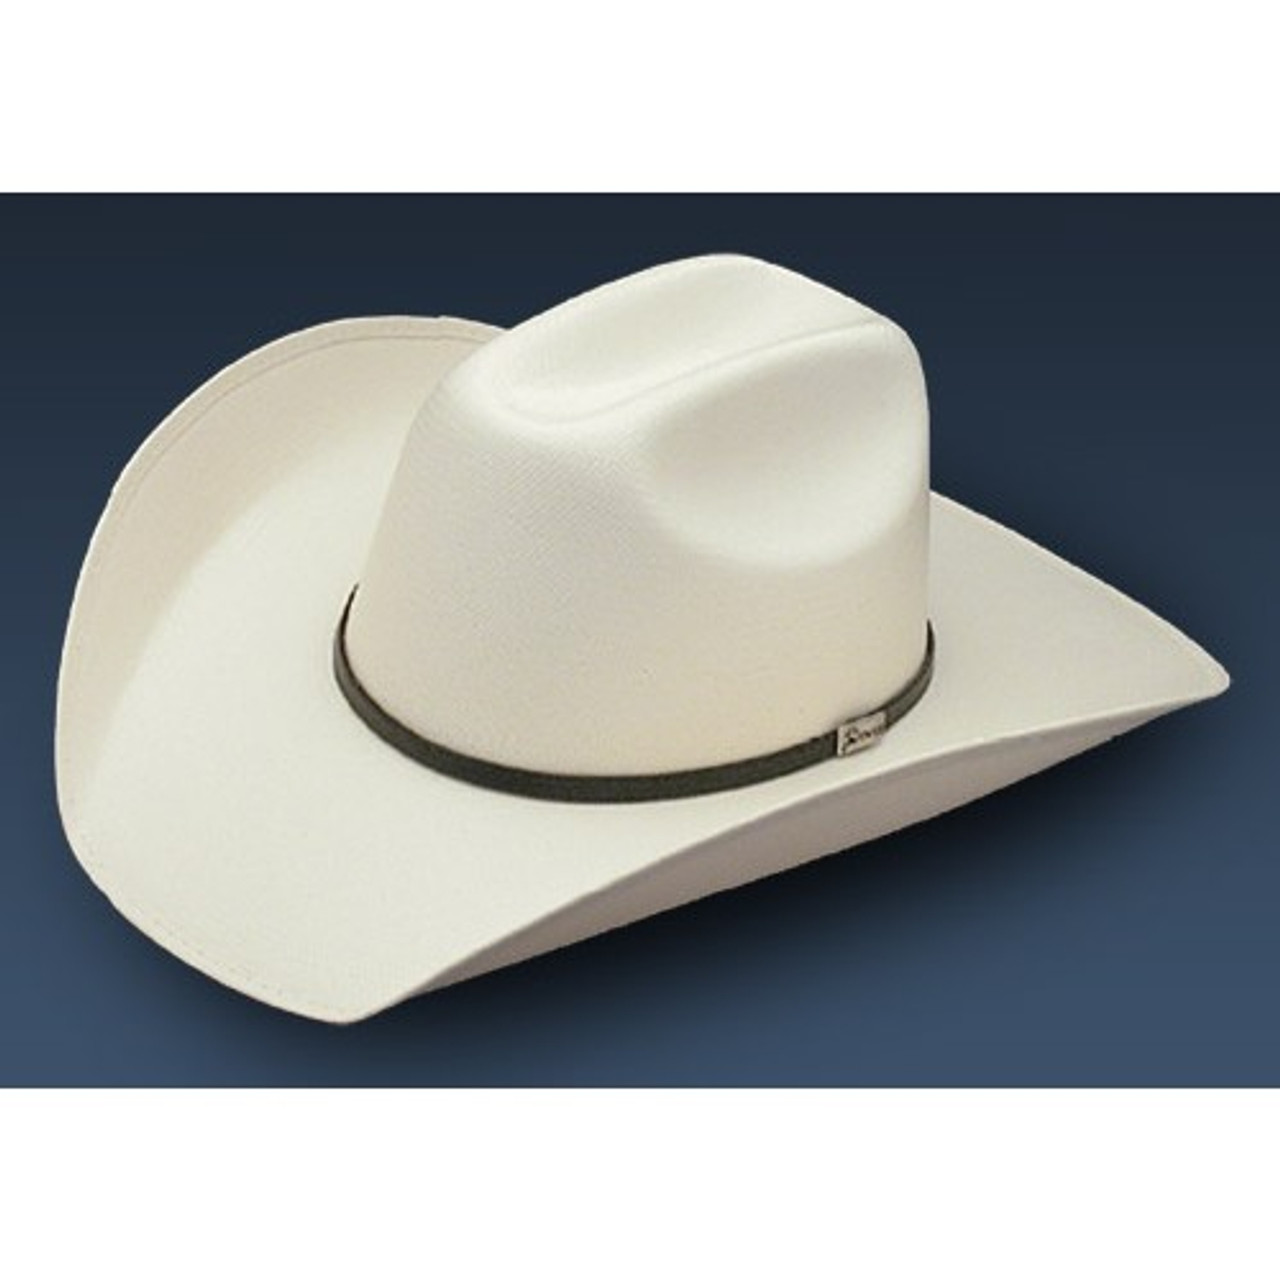 Atwood Shantung Hats - Hereford 100x Low Crown - Billy s Western Wear c04089b7ab8